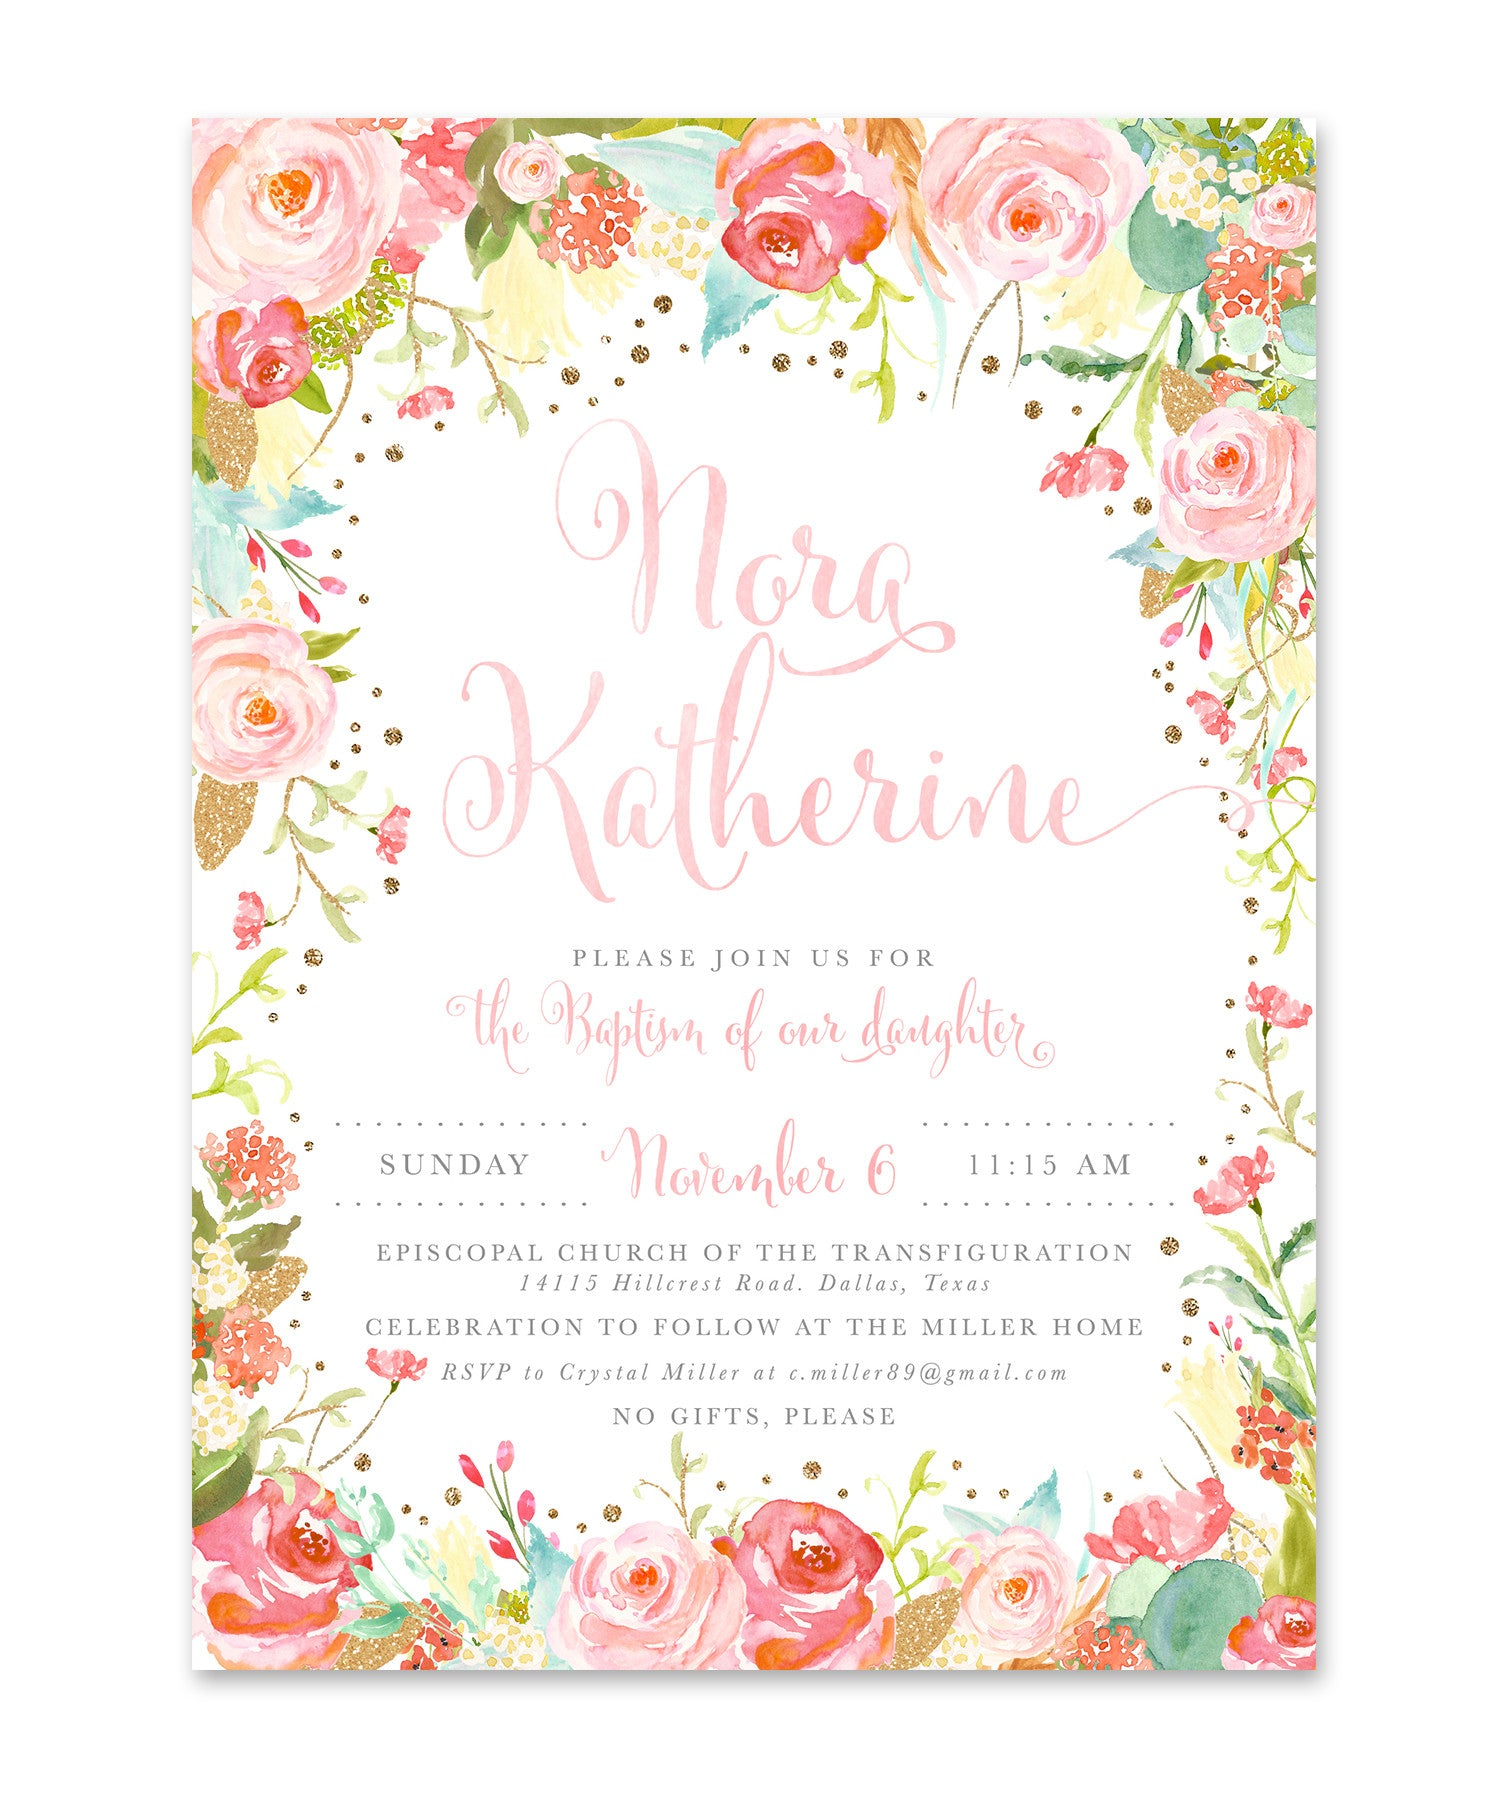 willow pink watercolor flowers baptism christening dedication